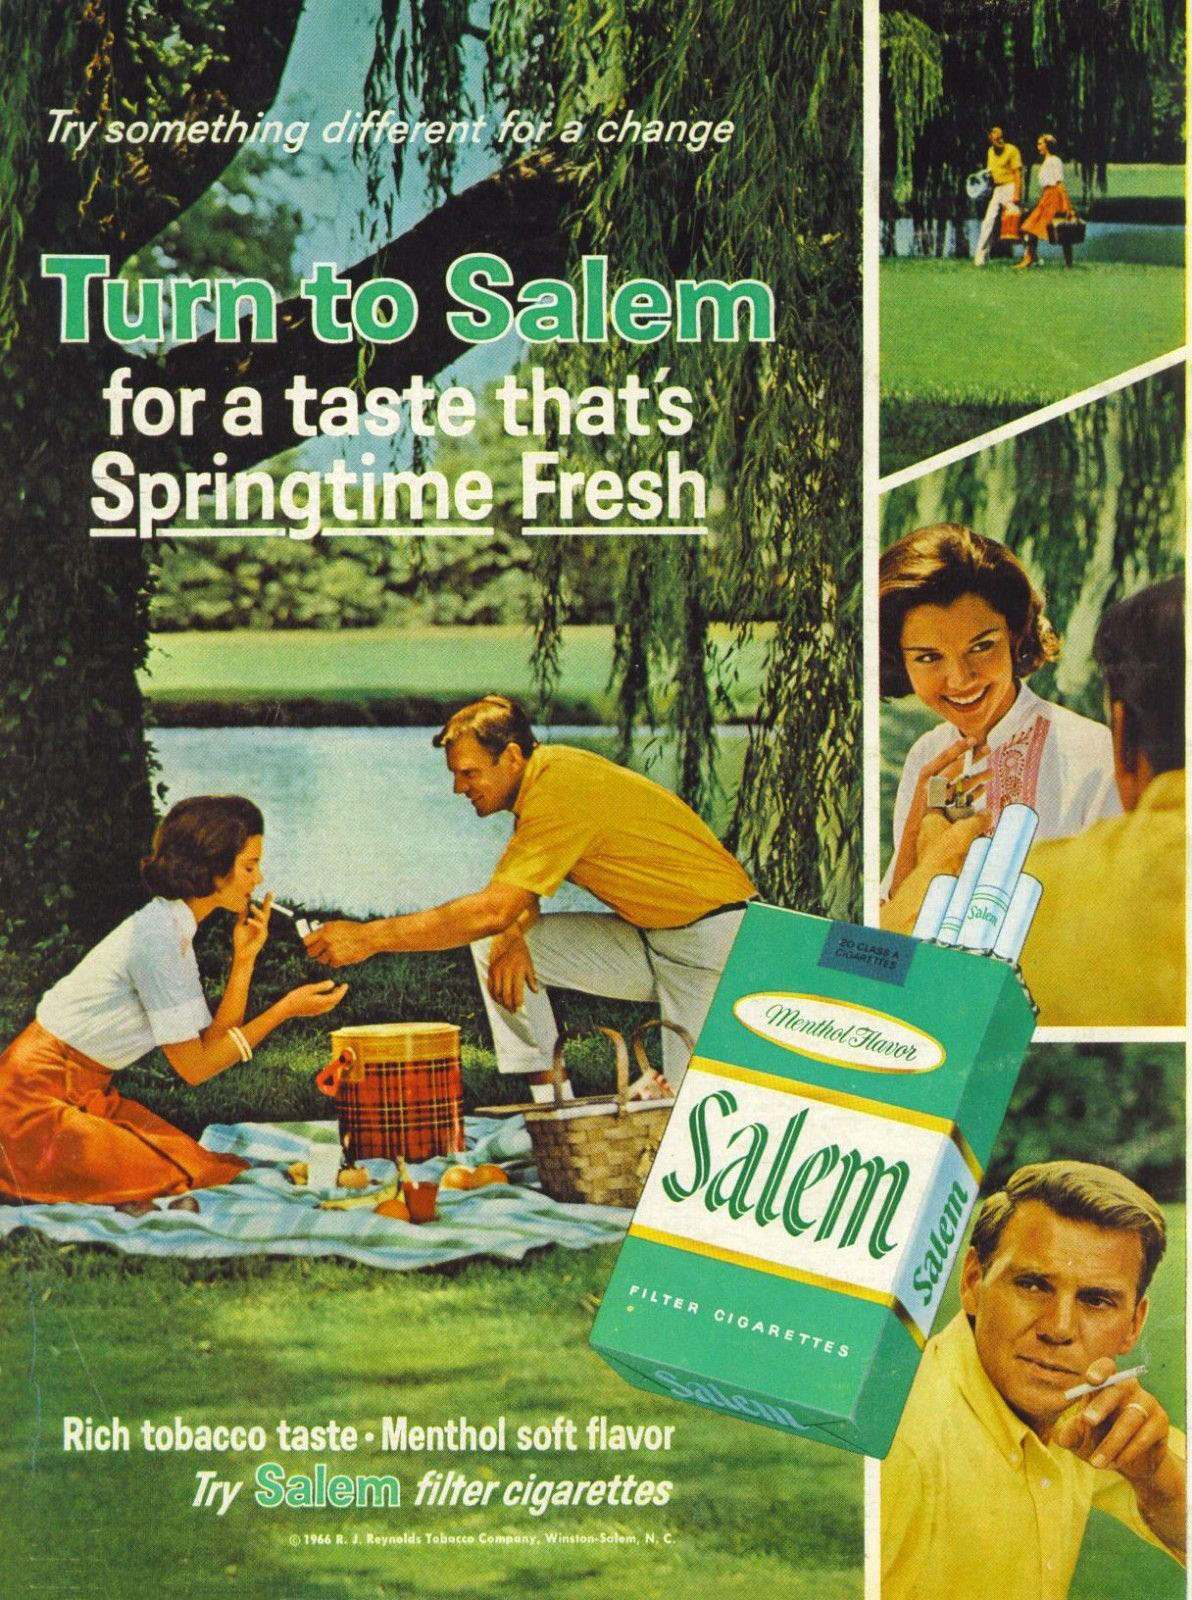 1966 Salem Cigarettes